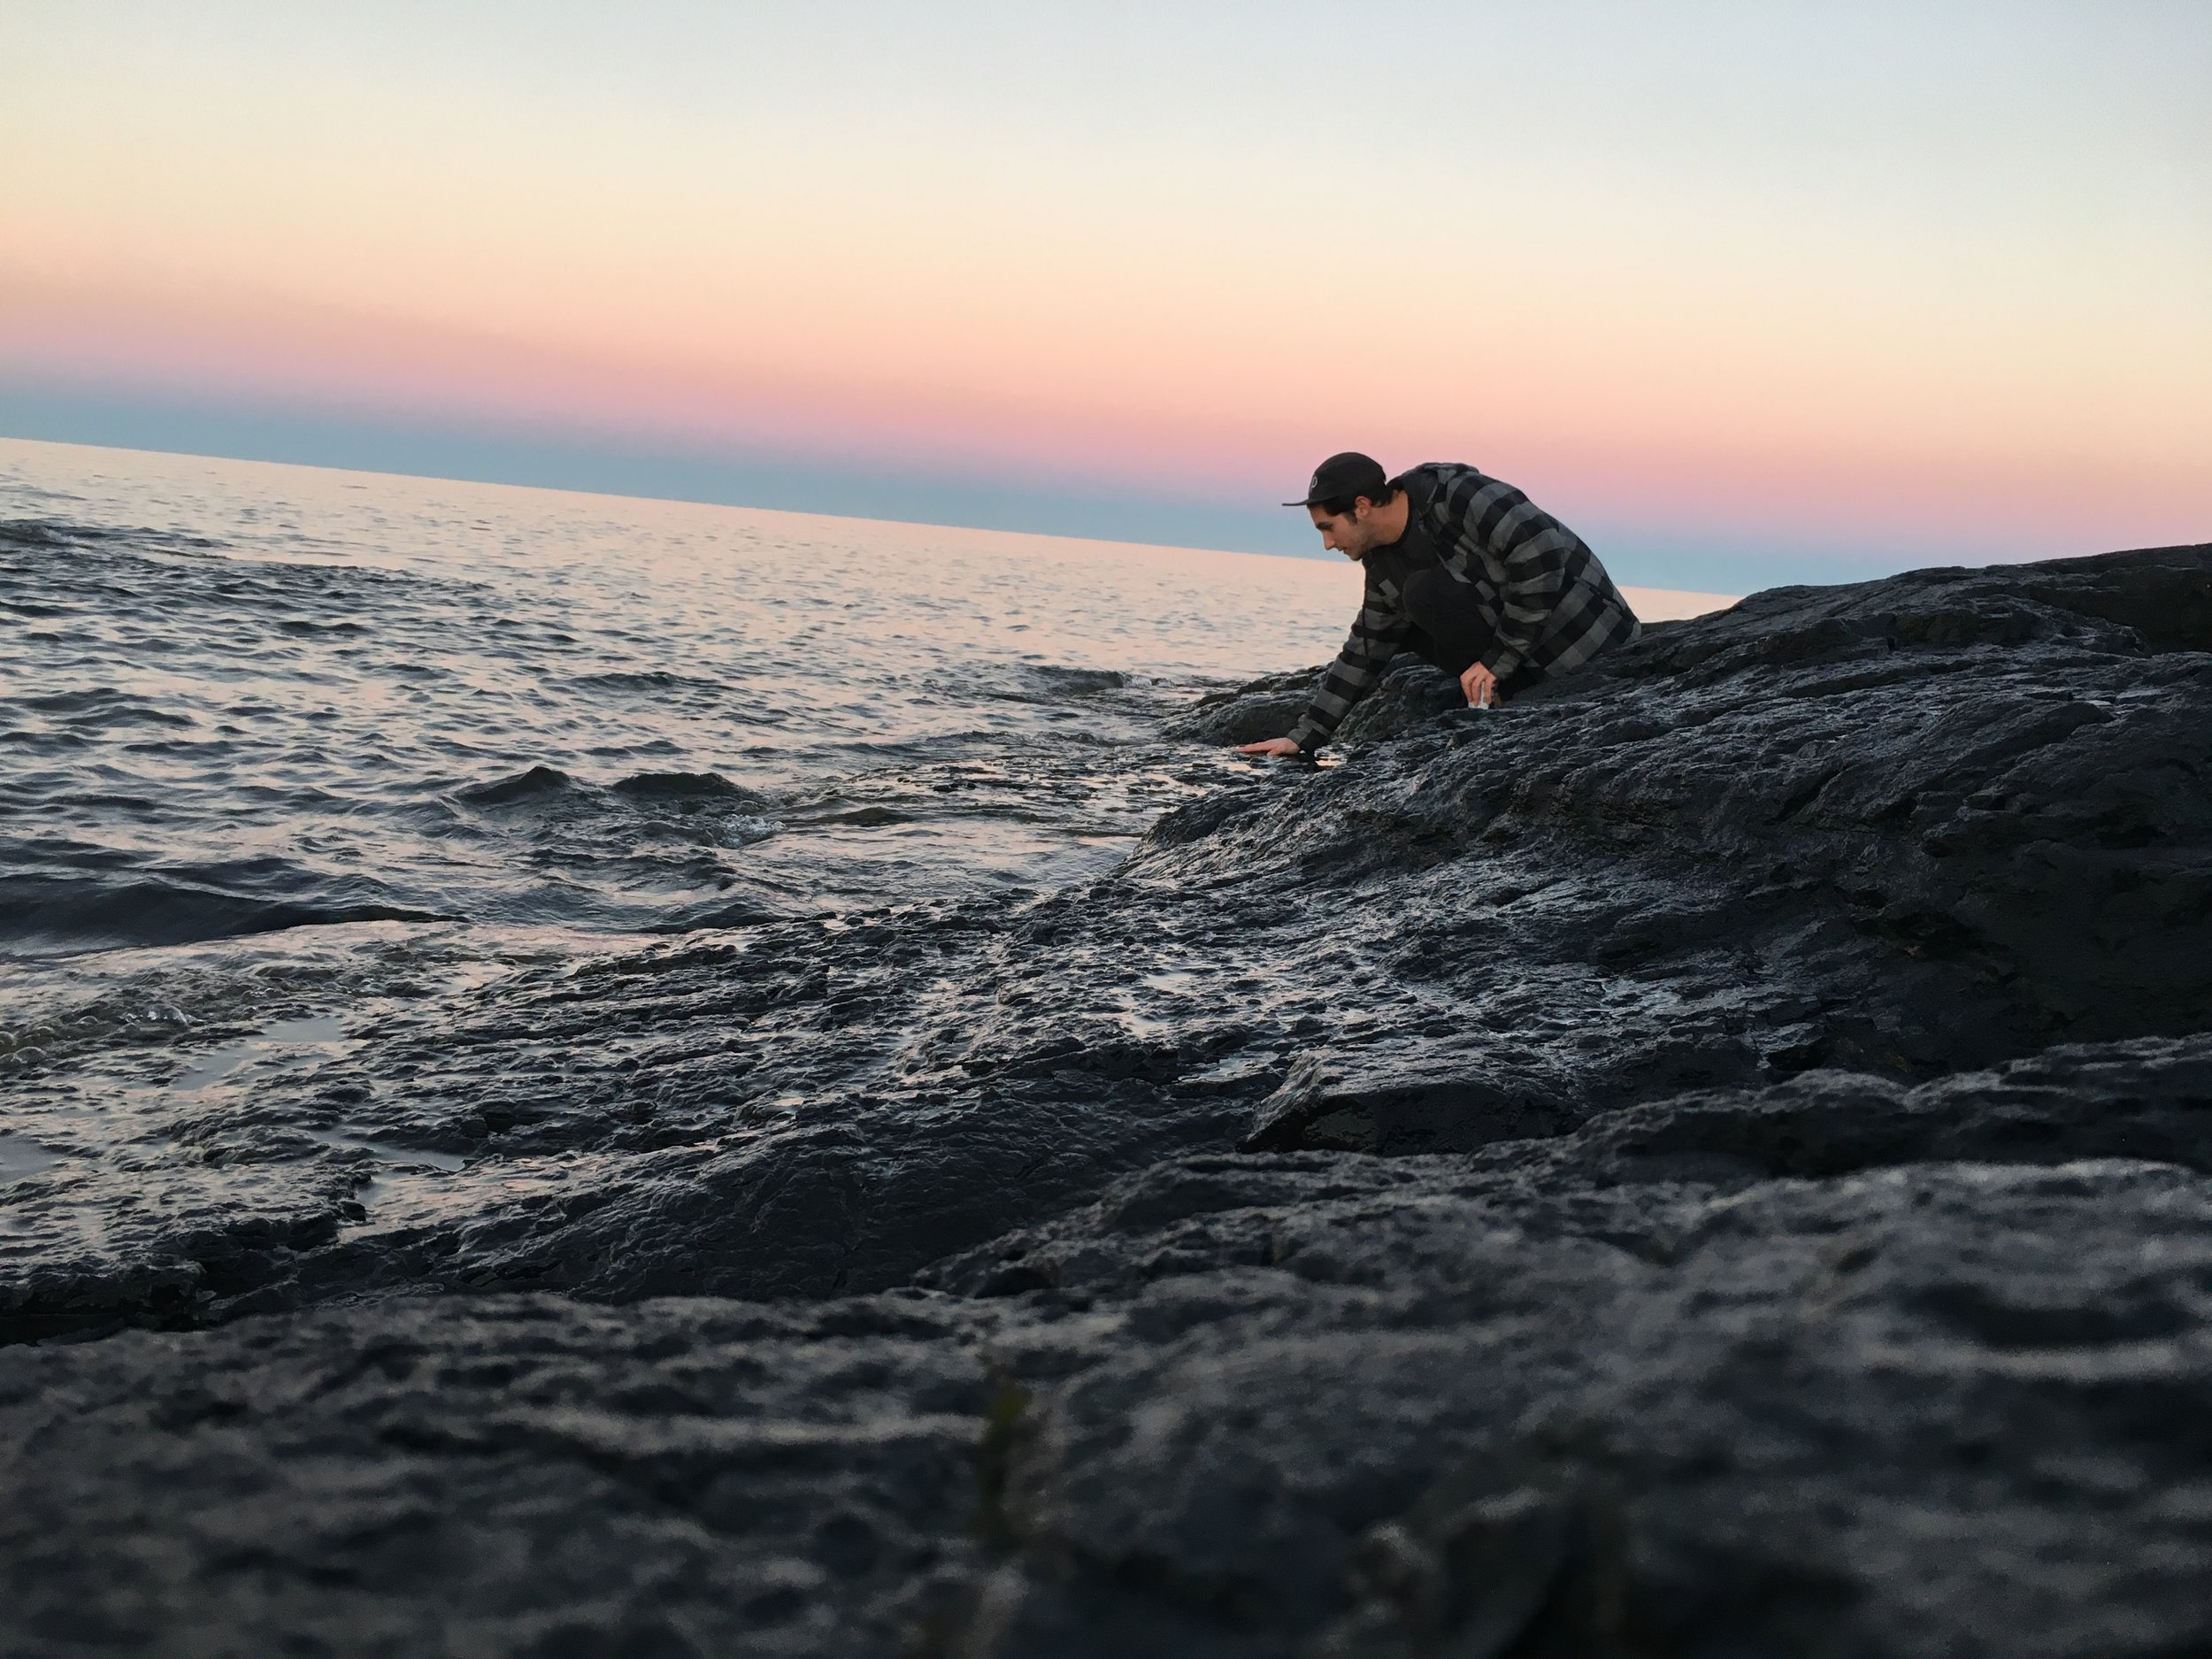 Sunset at Black Rocks. Photo Courtesy of Connor McNeely